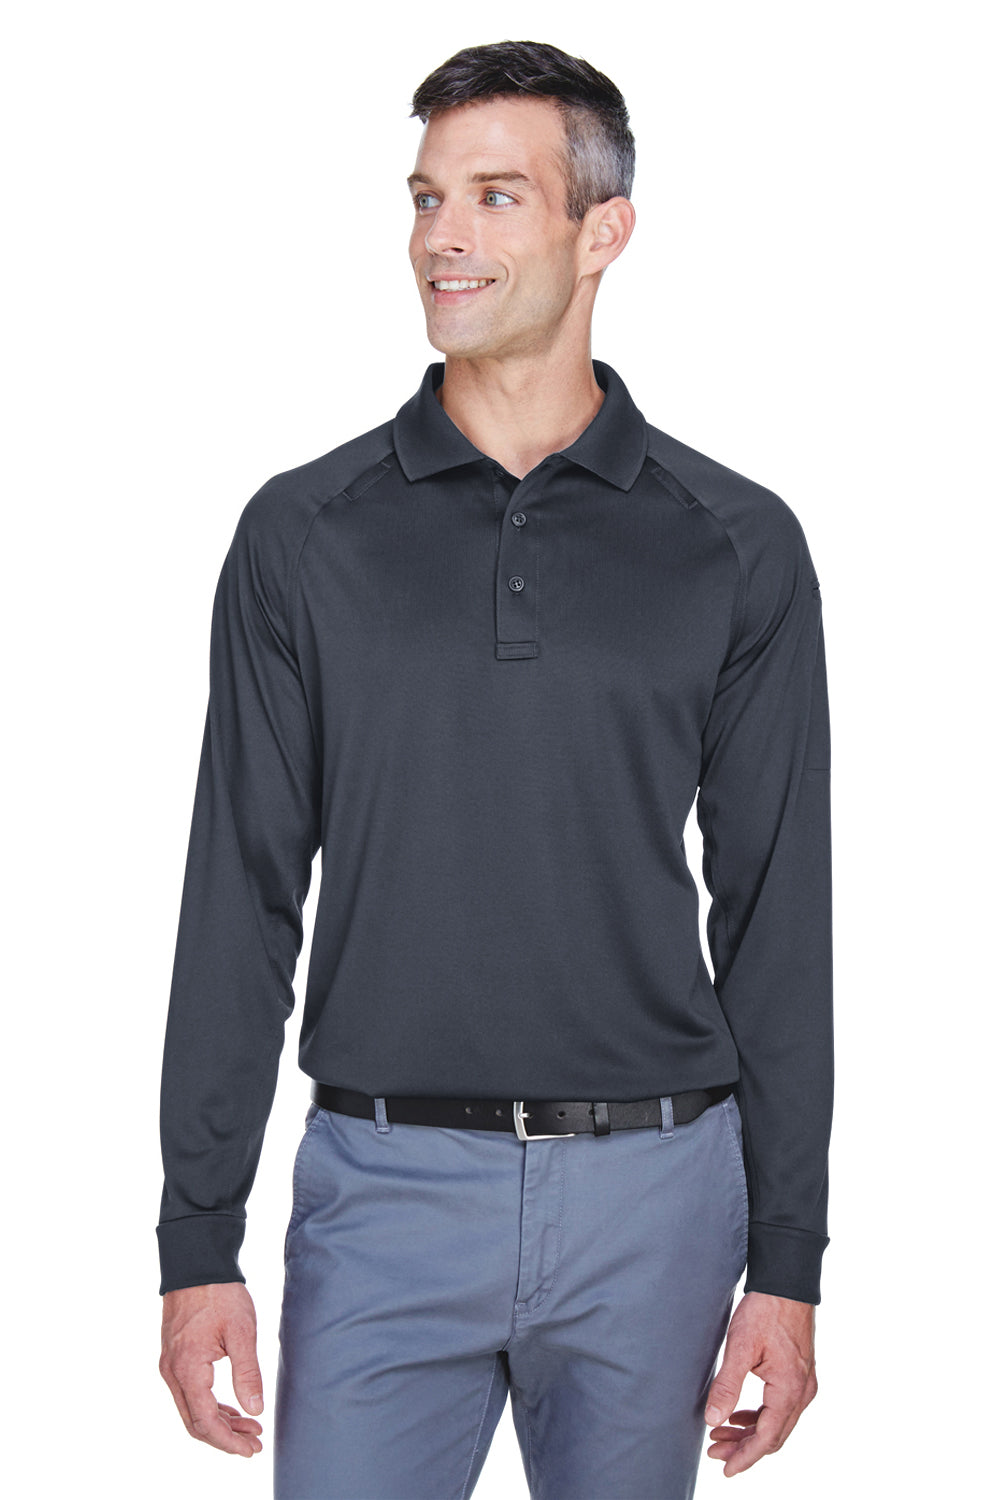 Harriton M211L Mens Advantage Tactical Moisture Wicking Long Sleeve Polo Shirt Charcoal Grey Front